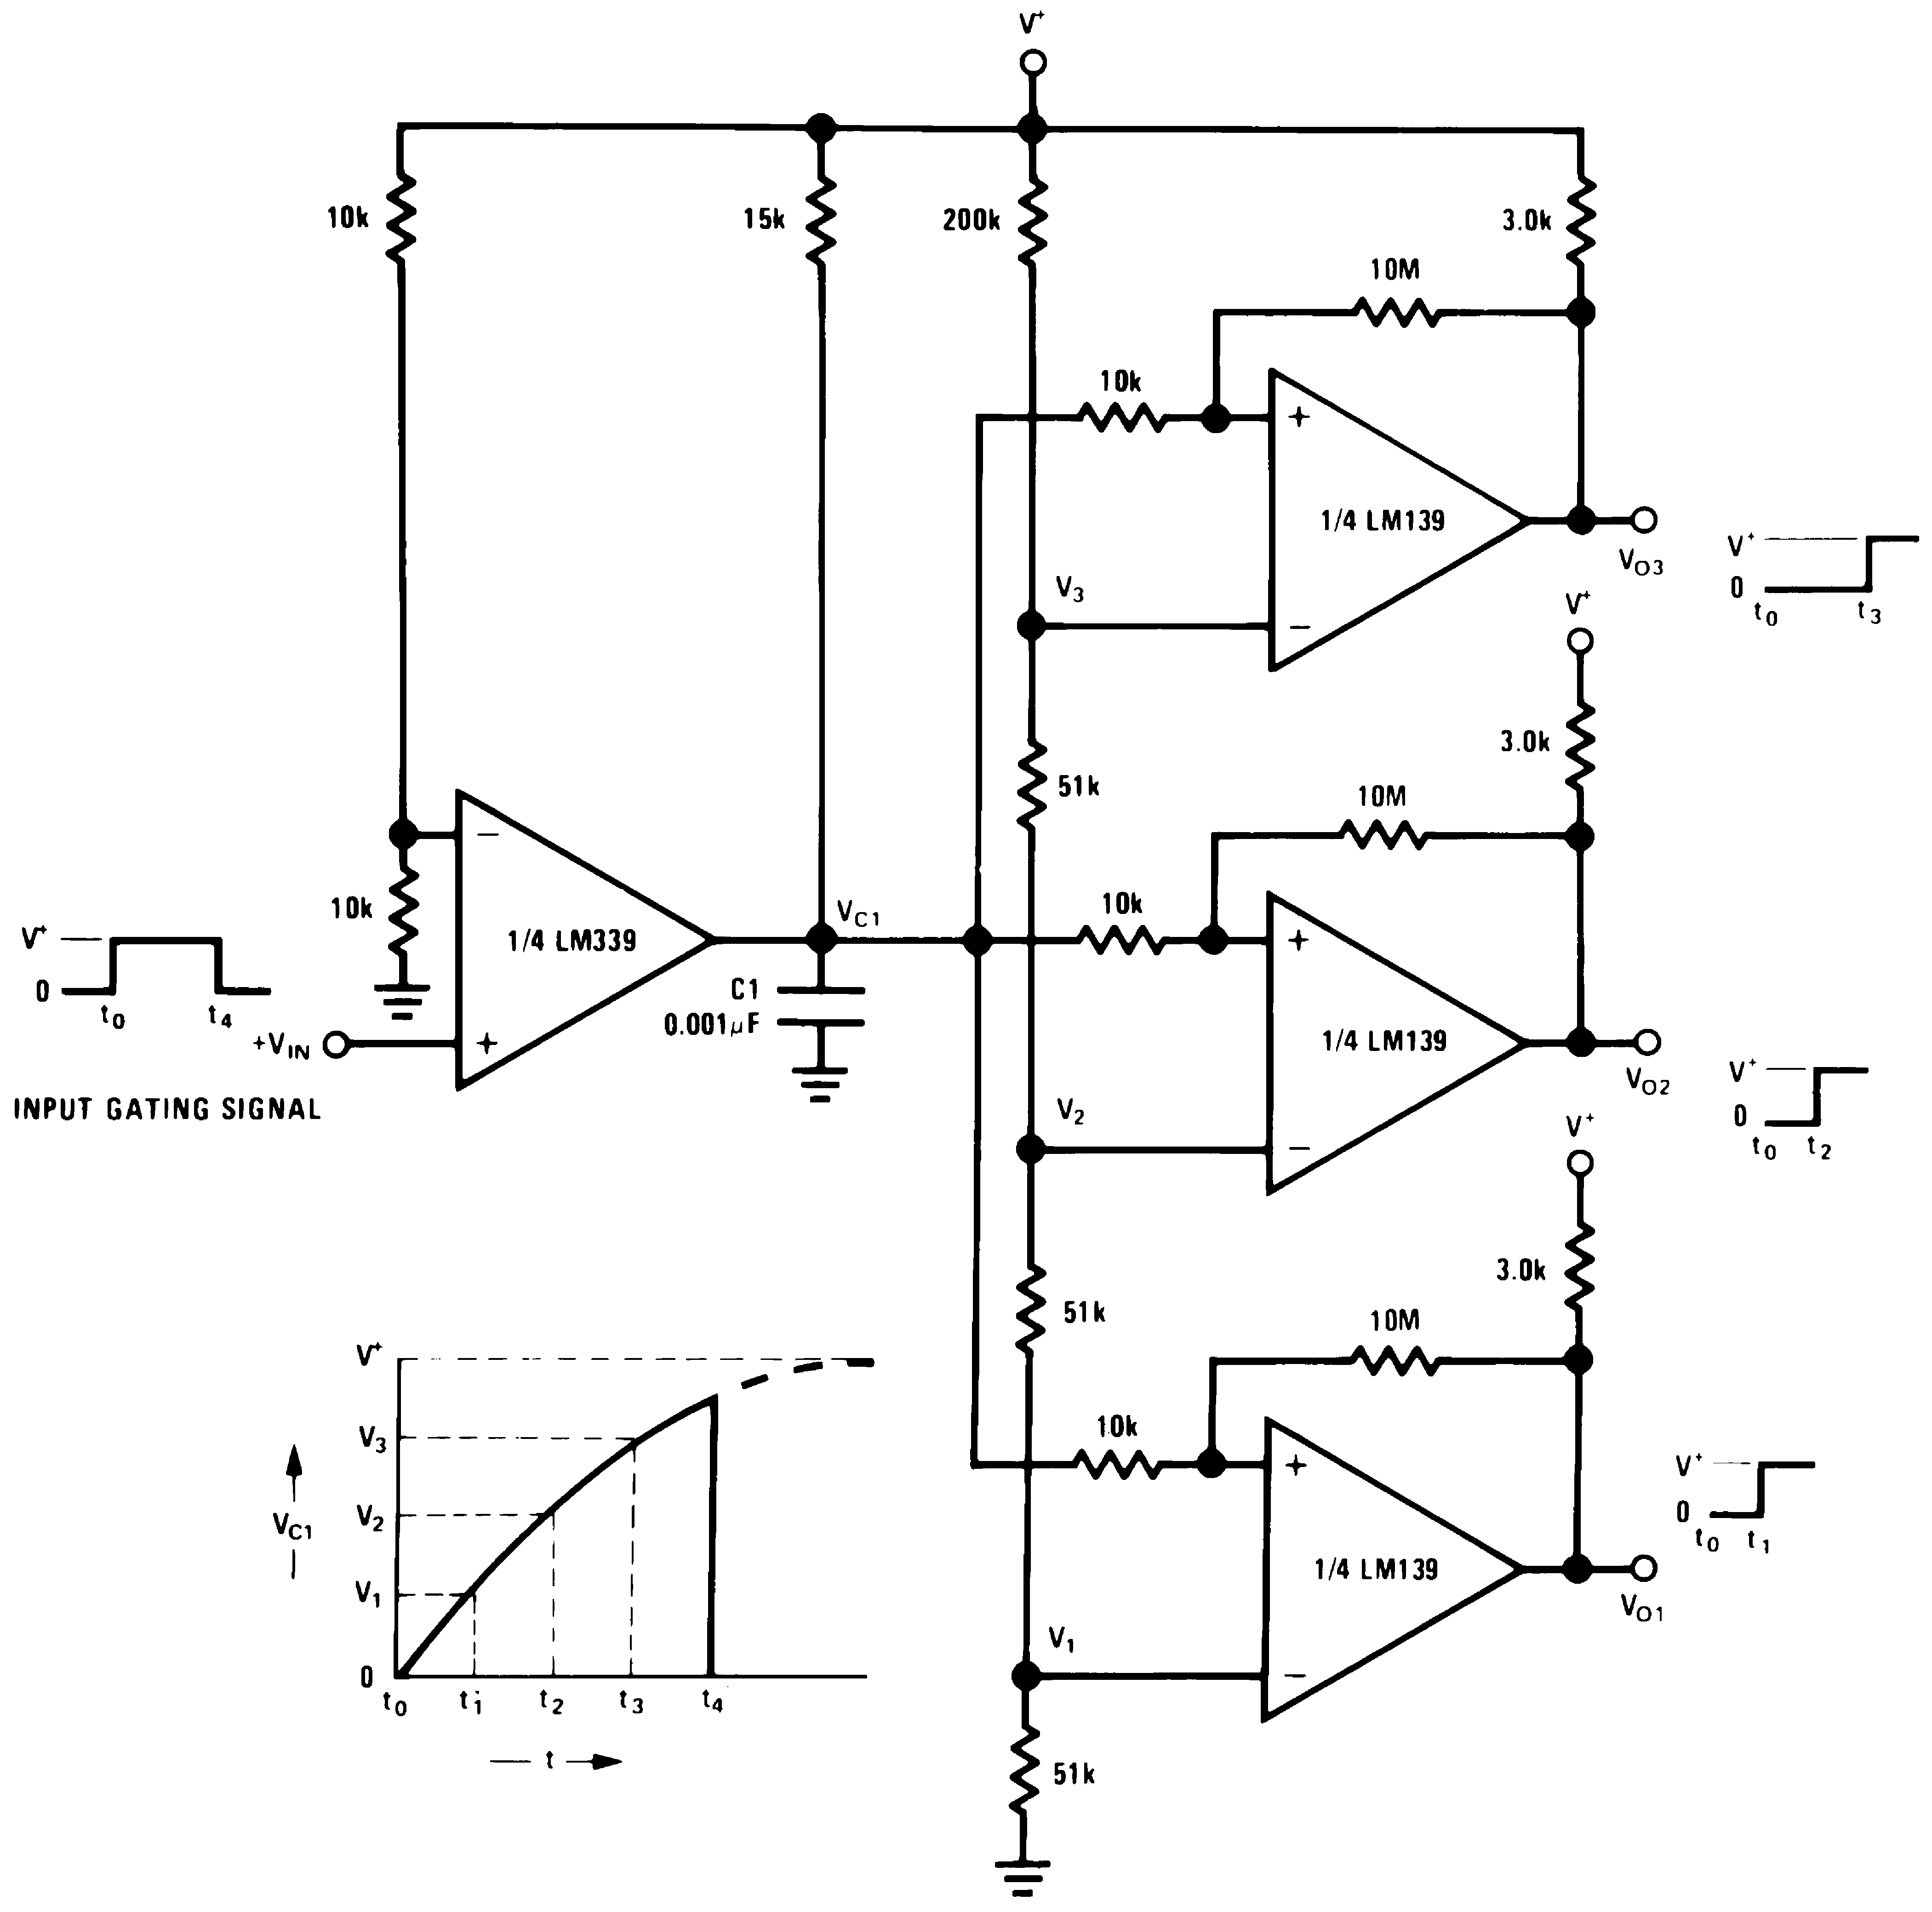 Lm239 N Ladder Logic Diagram For Elevator 00570614